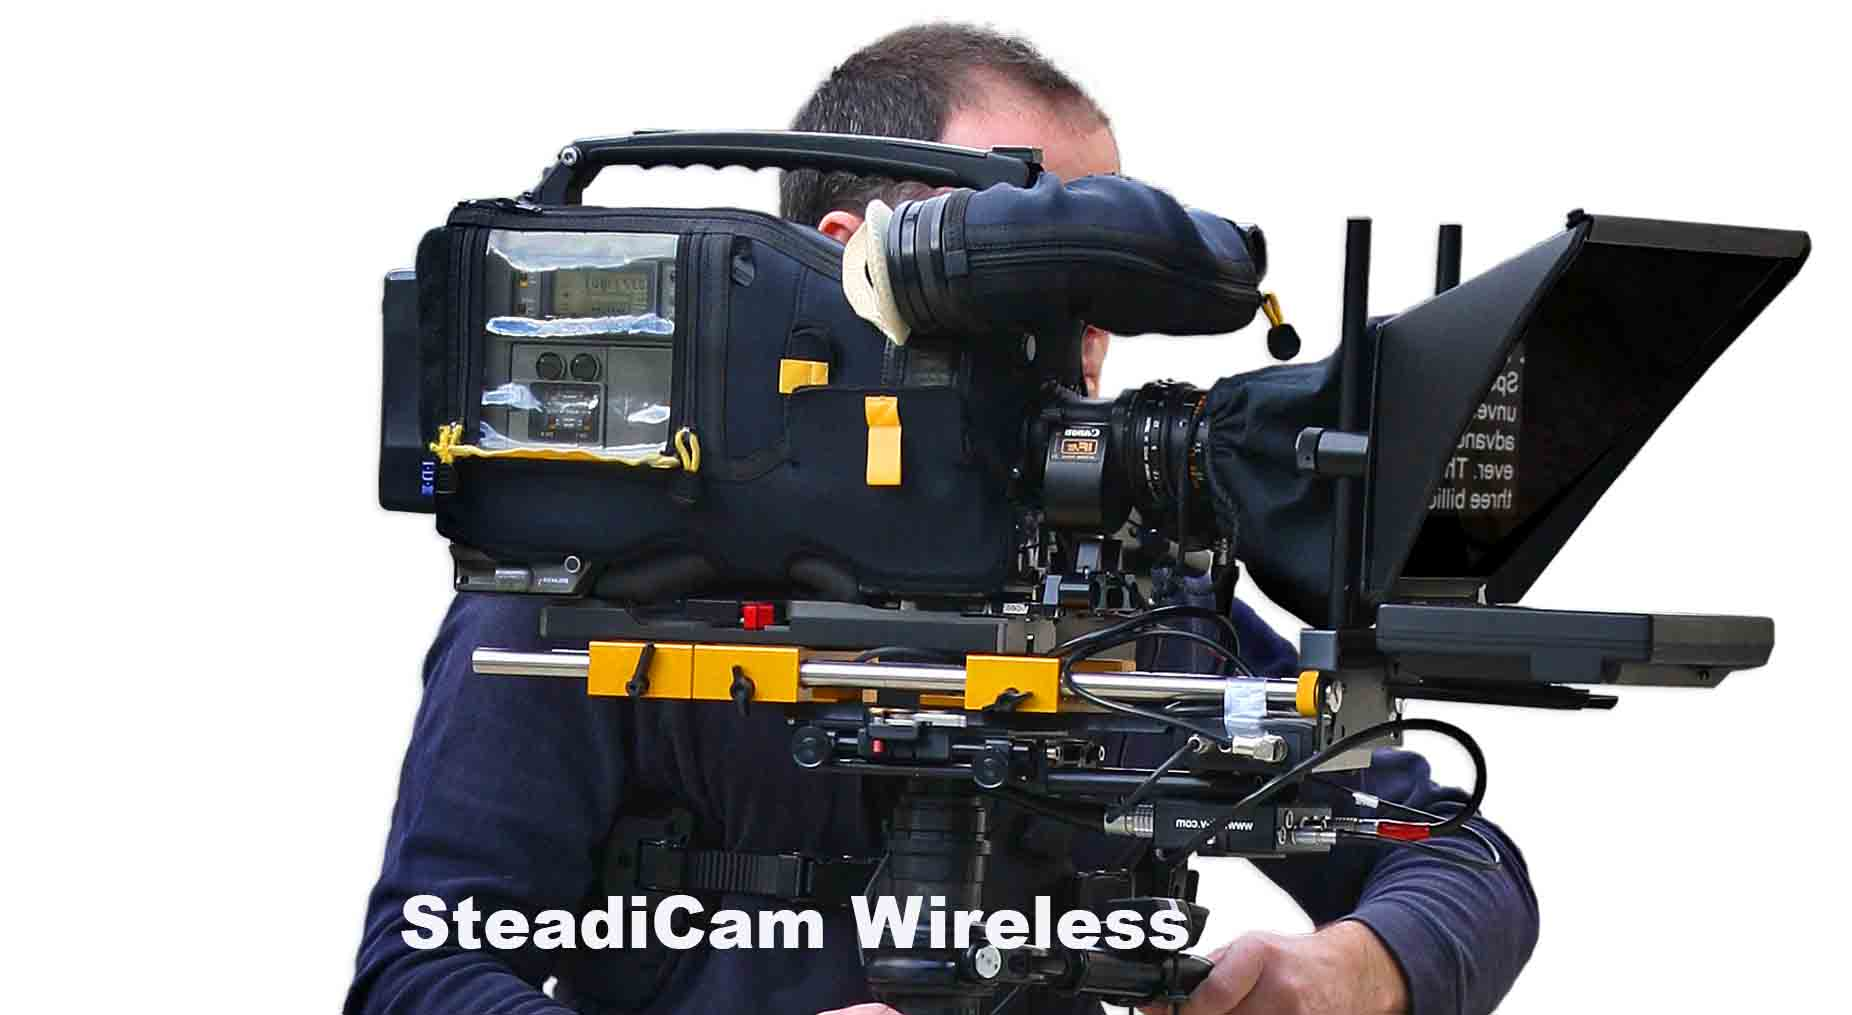 SteadiCam Wireless